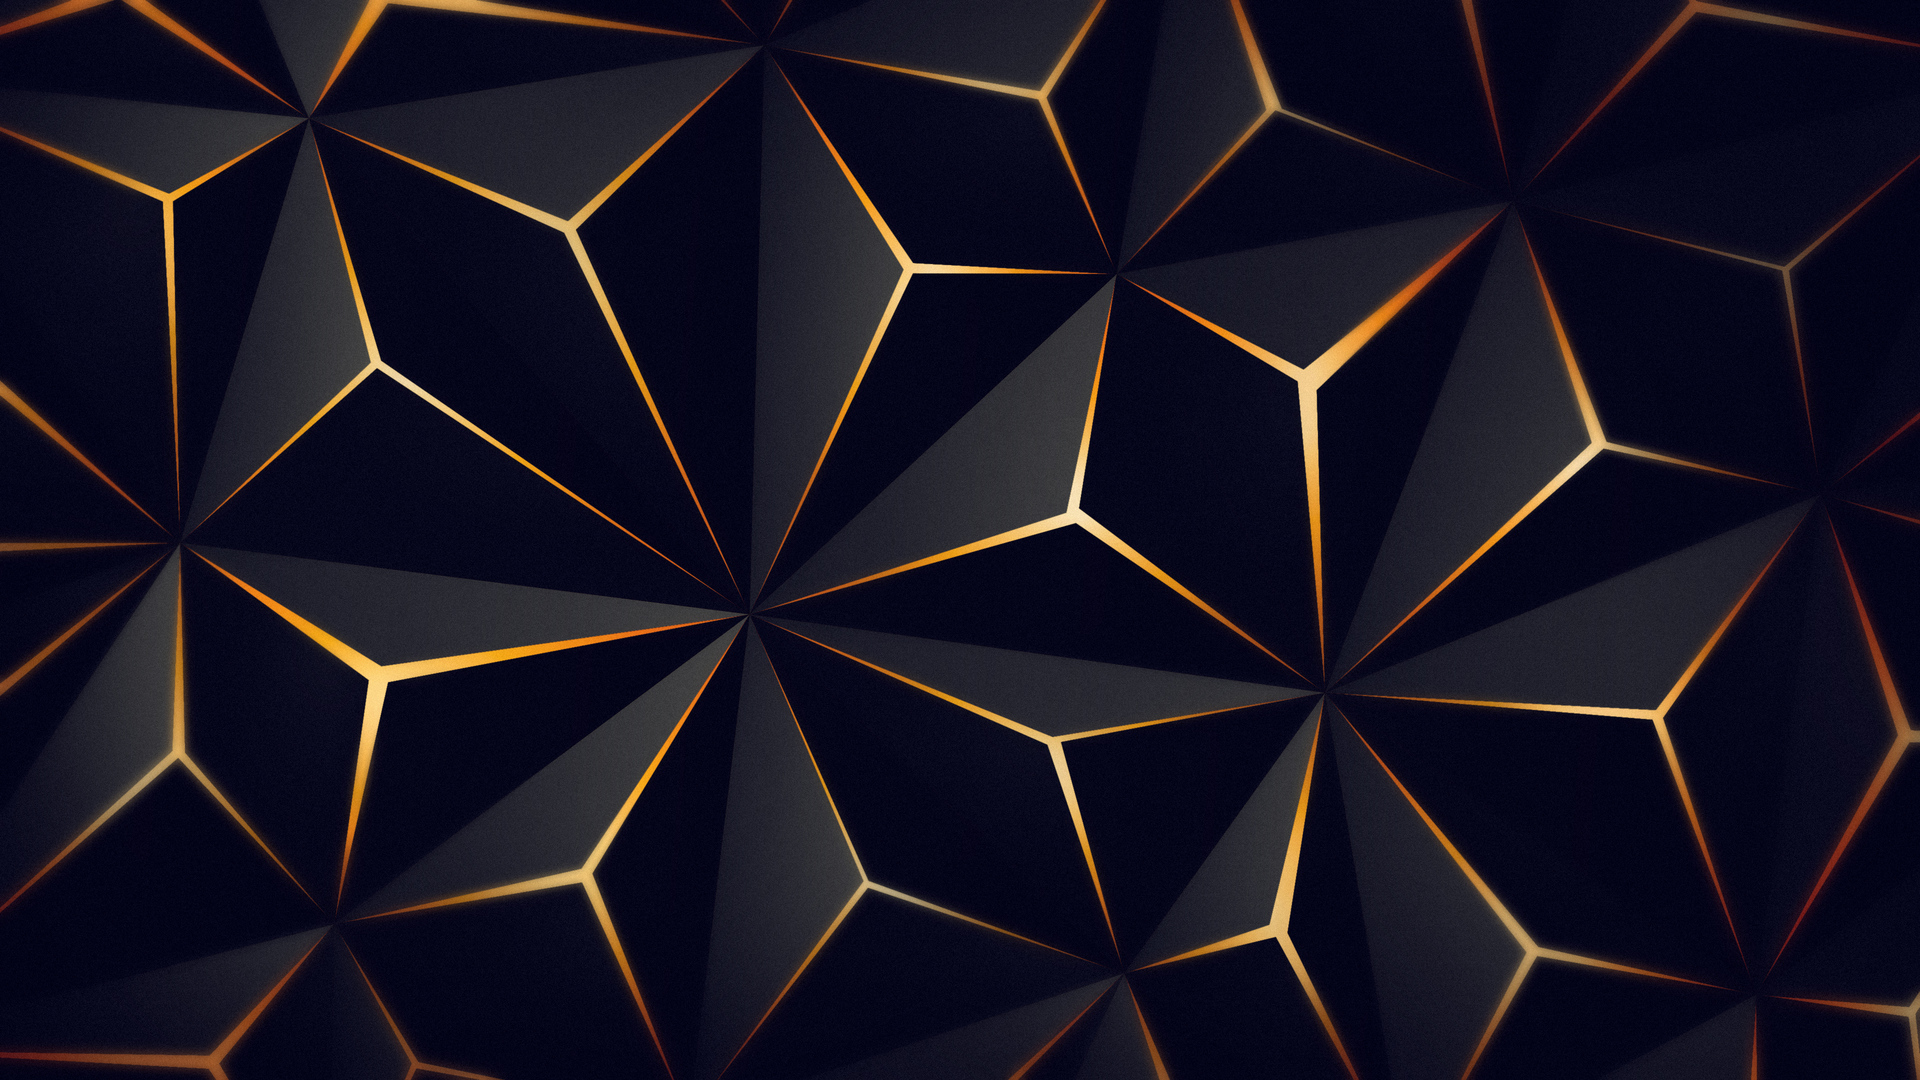 1920x1080 Triangle Solid Black Gold 4k Laptop Full HD ...